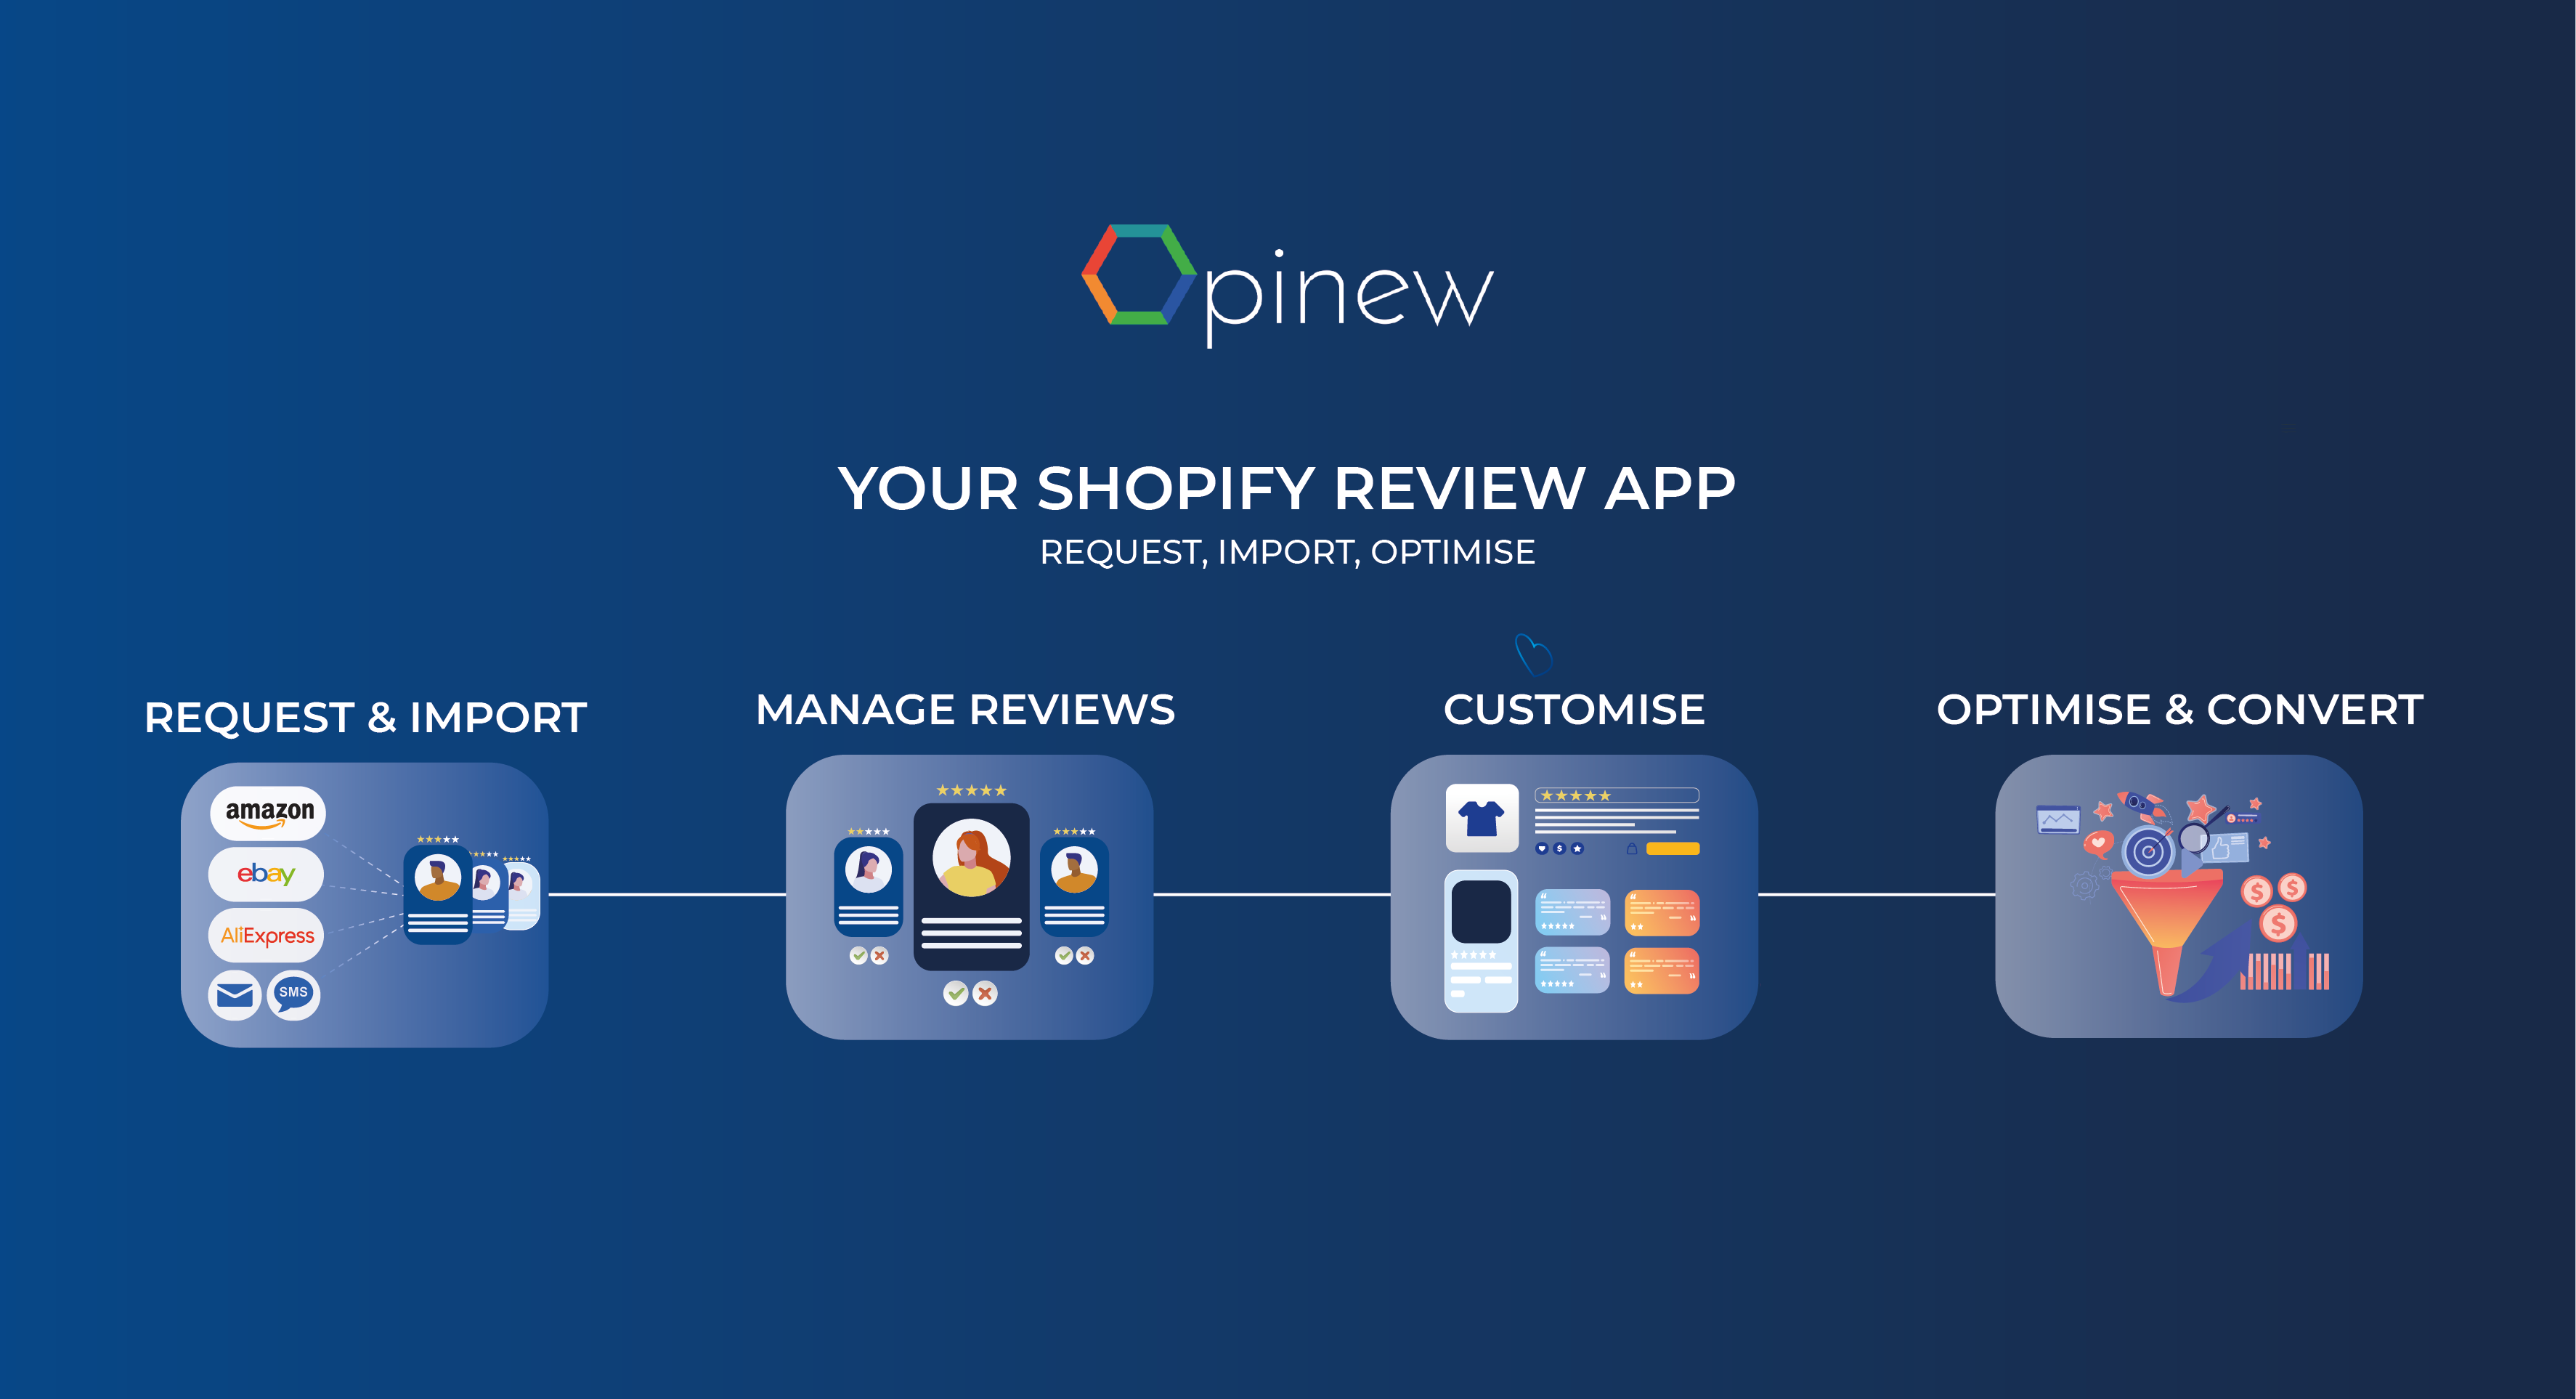 Opinew - Your Shopify Review App